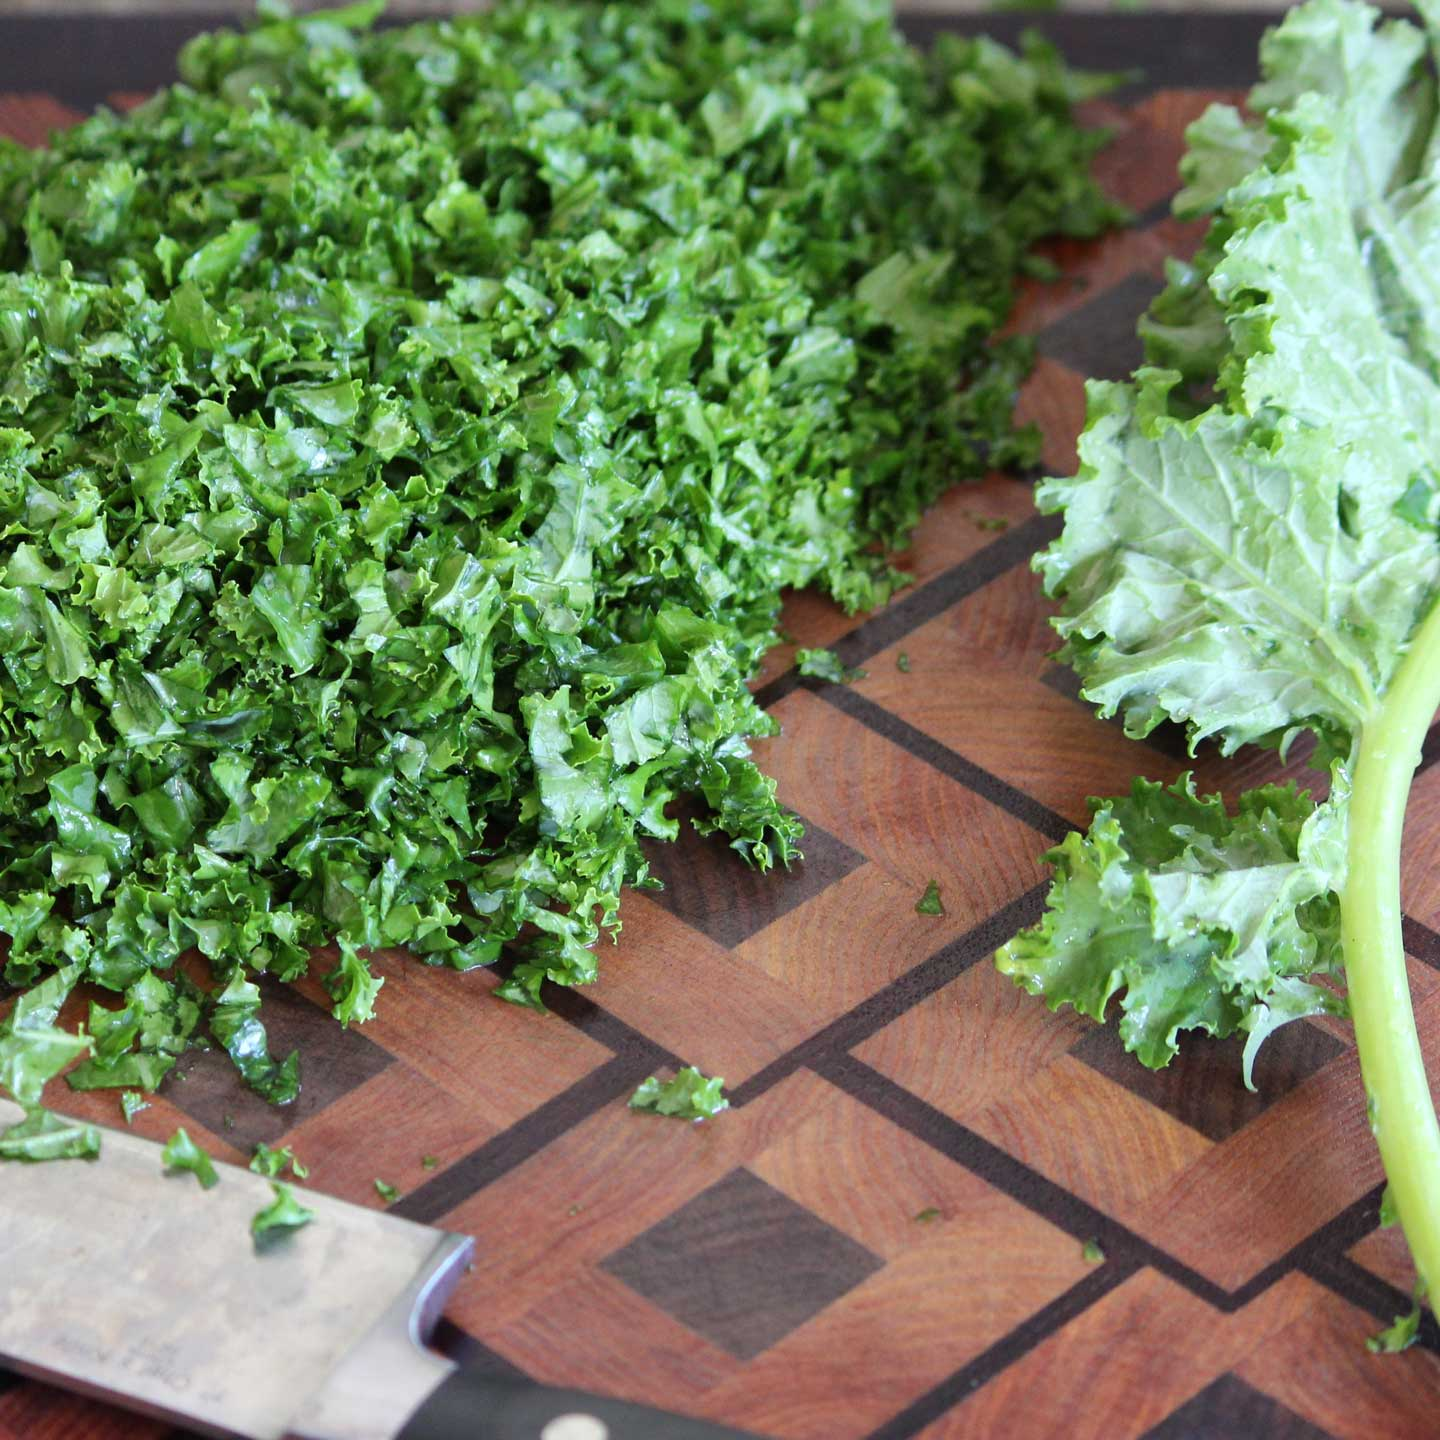 wooden inlay cutting board with a pile of finely chopped kale on one side and a whole kale leaf on the other